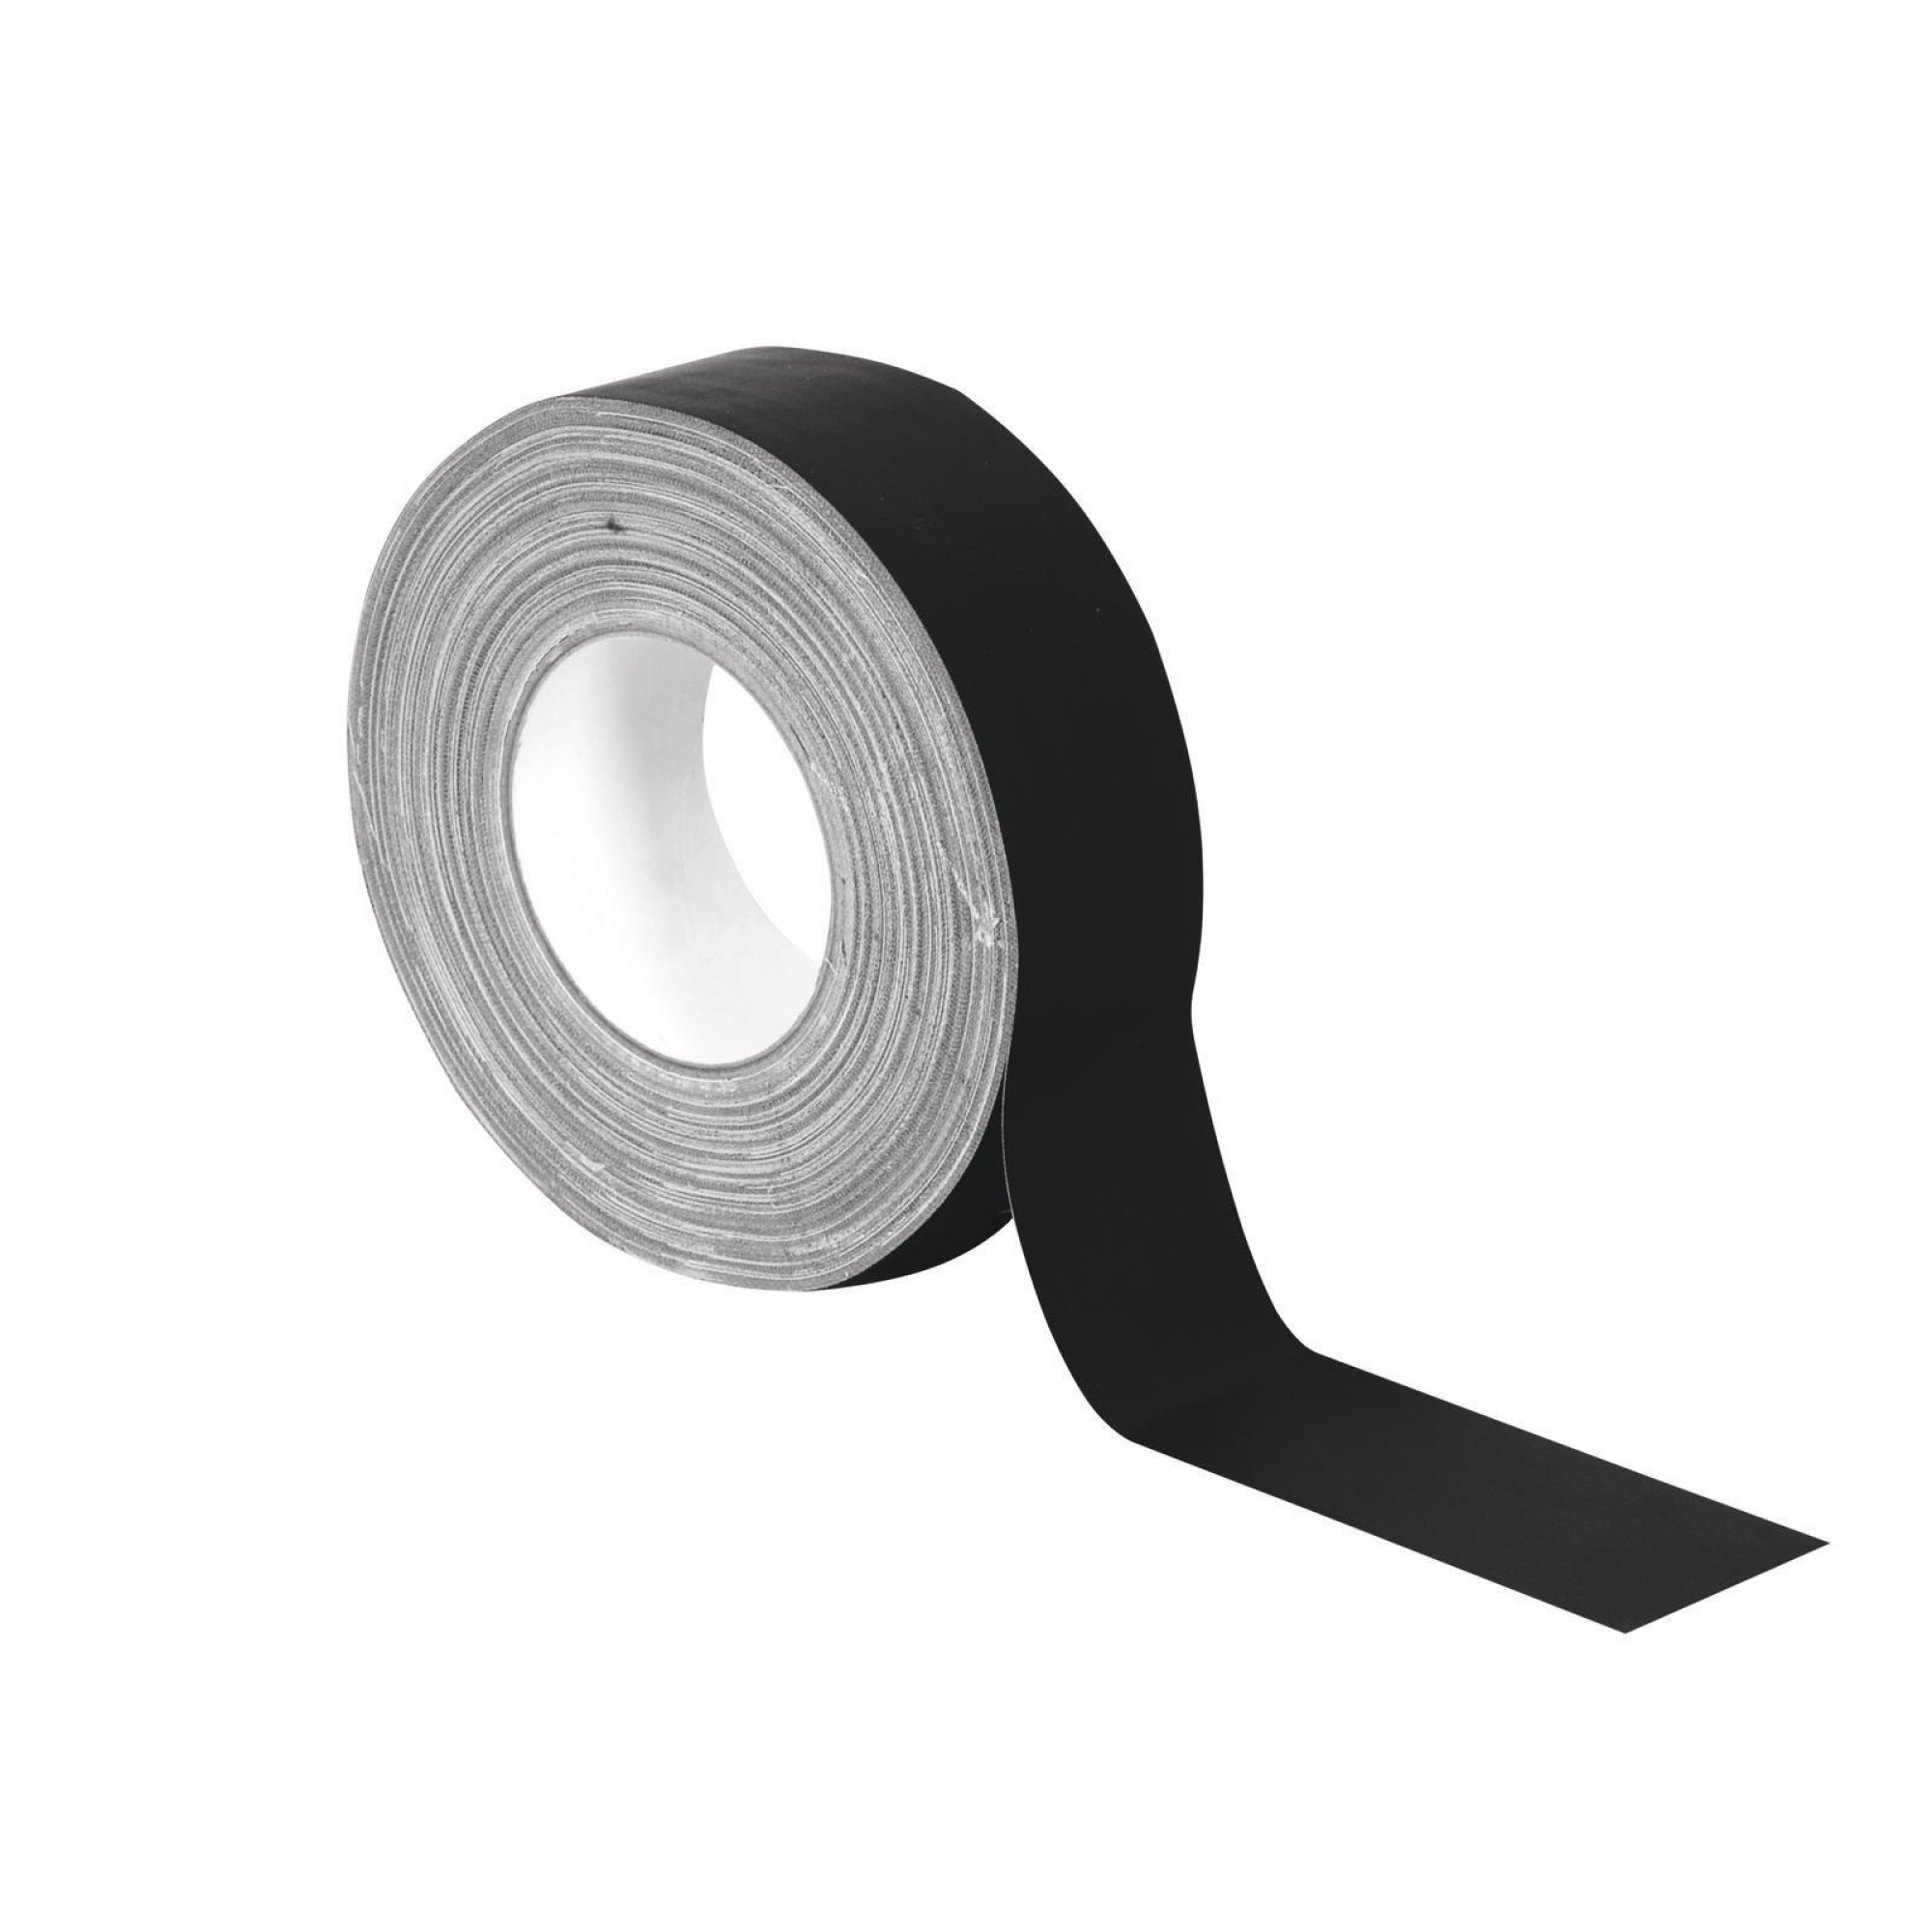 GAFFA Tape Pro 50mm x 50m black matt